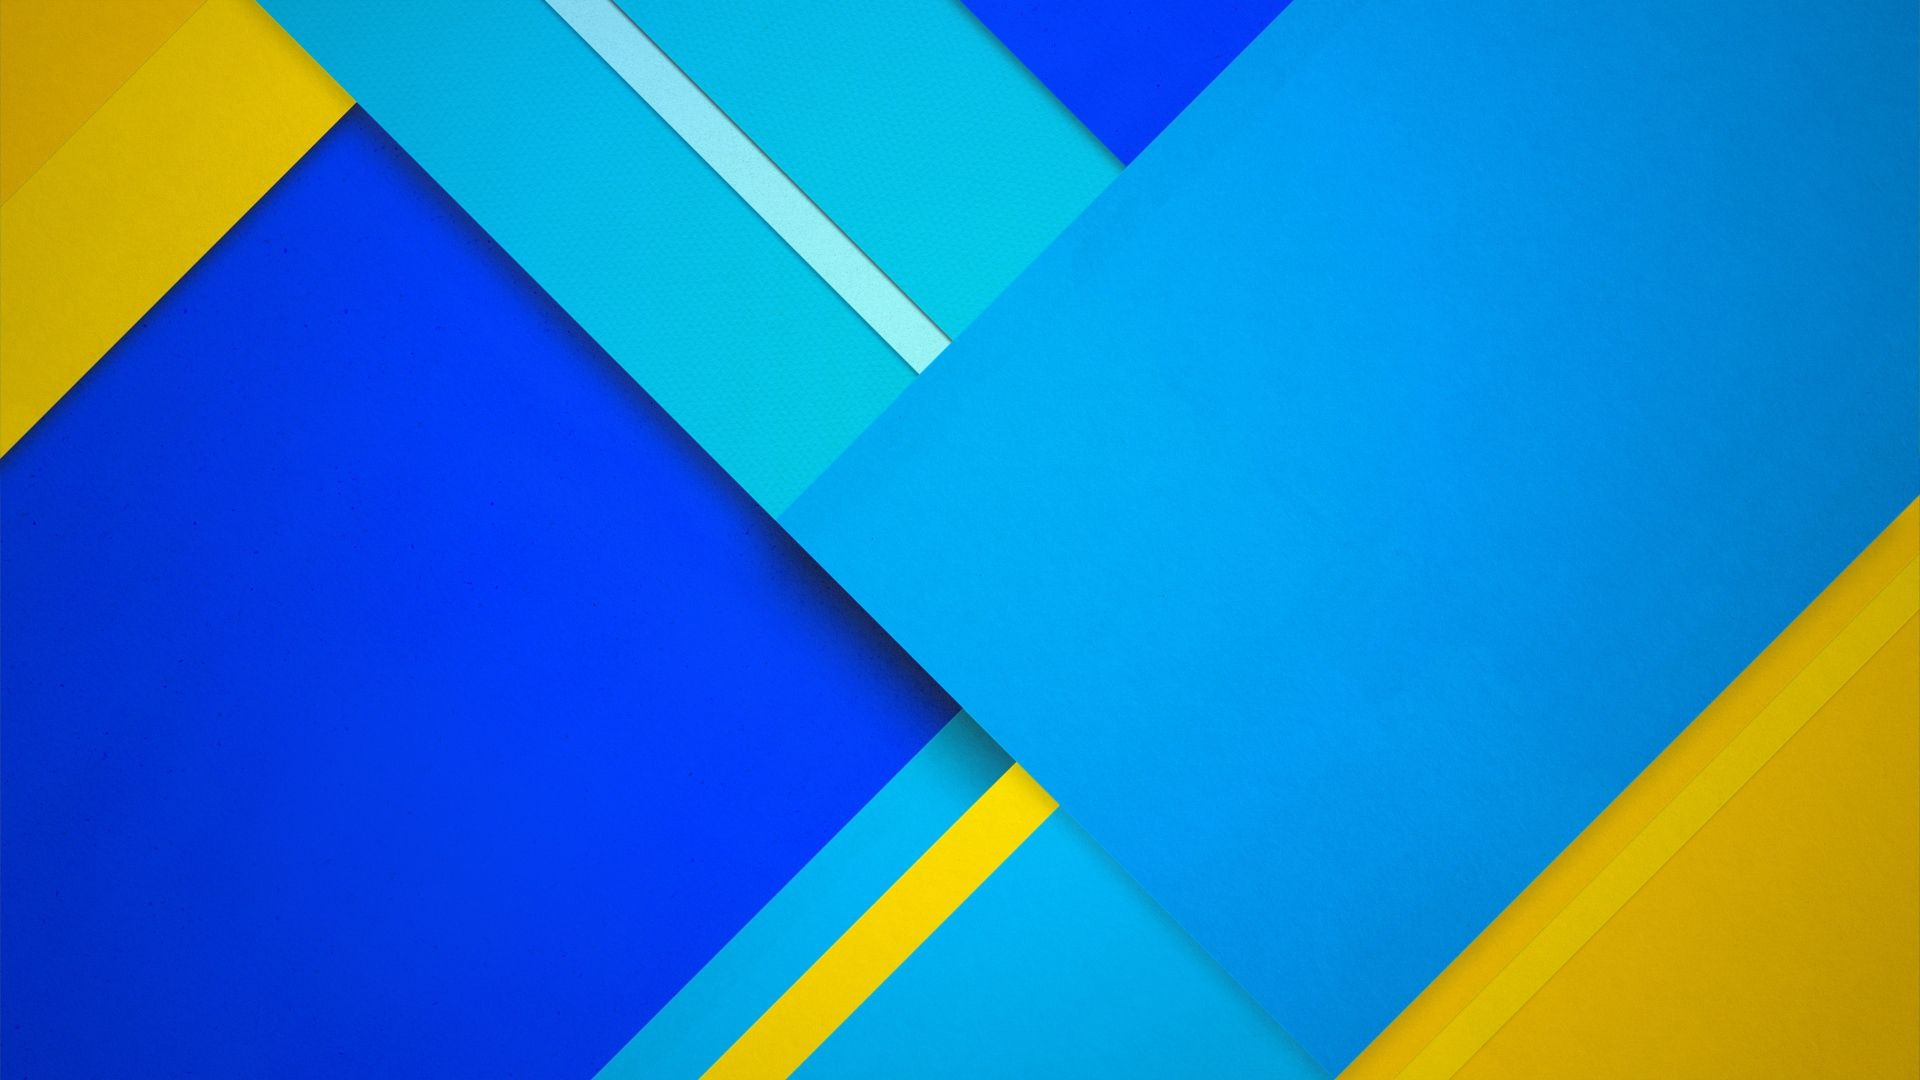 Background Geometry Blue Yellow